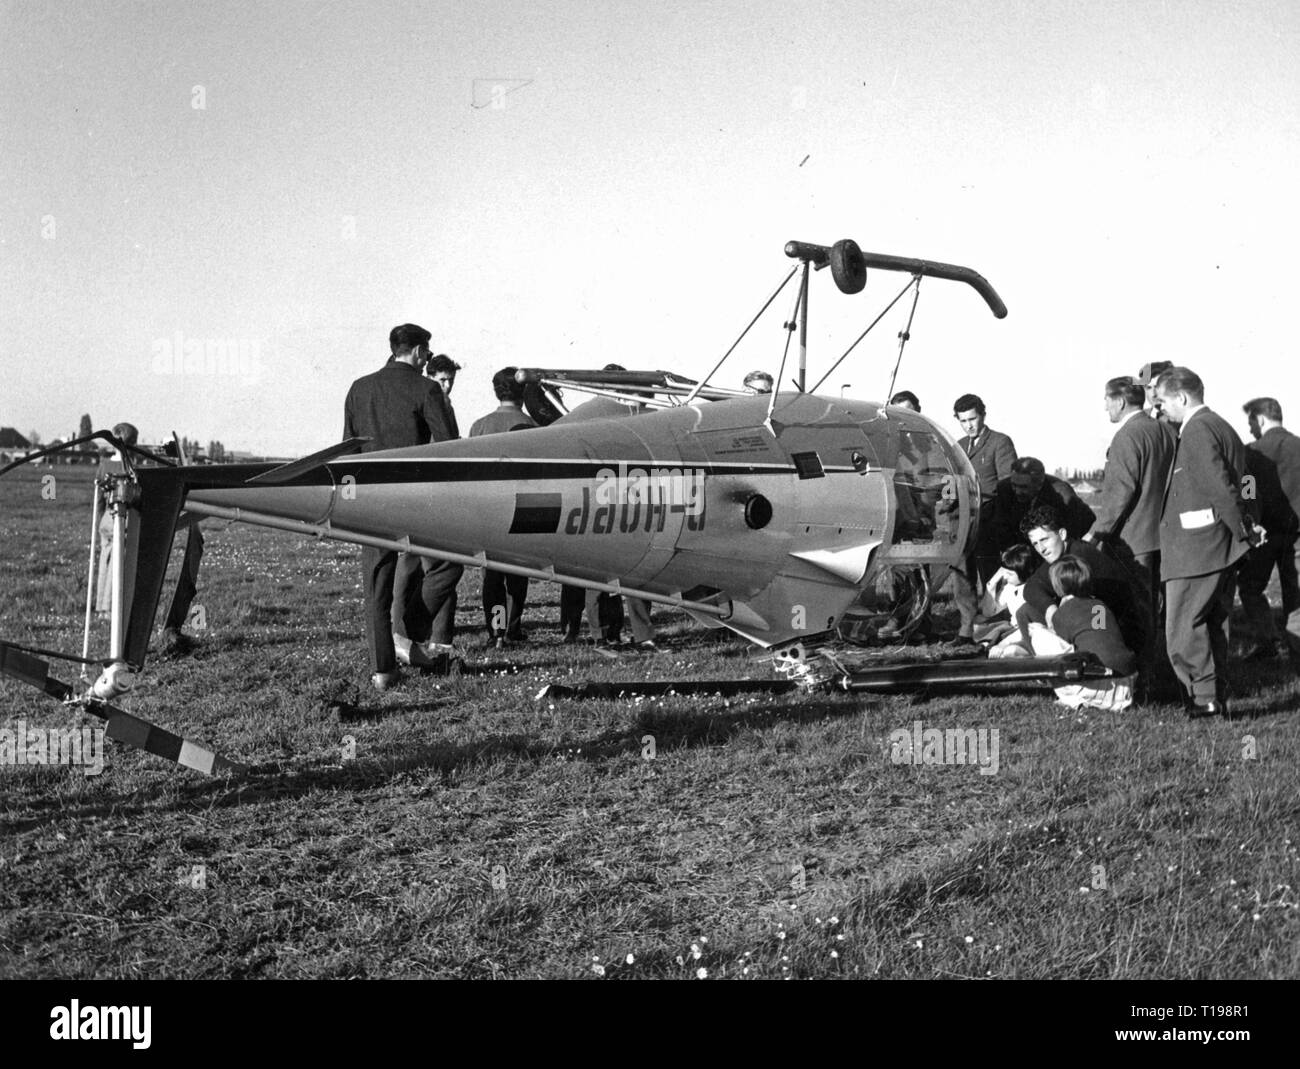 transport / transportation, aviation, disaster, a Brantly B-2 helicopter crashed on a meadow, Germany, early 1960s, Additional-Rights-Clearance-Info-Not-Available - Stock Image